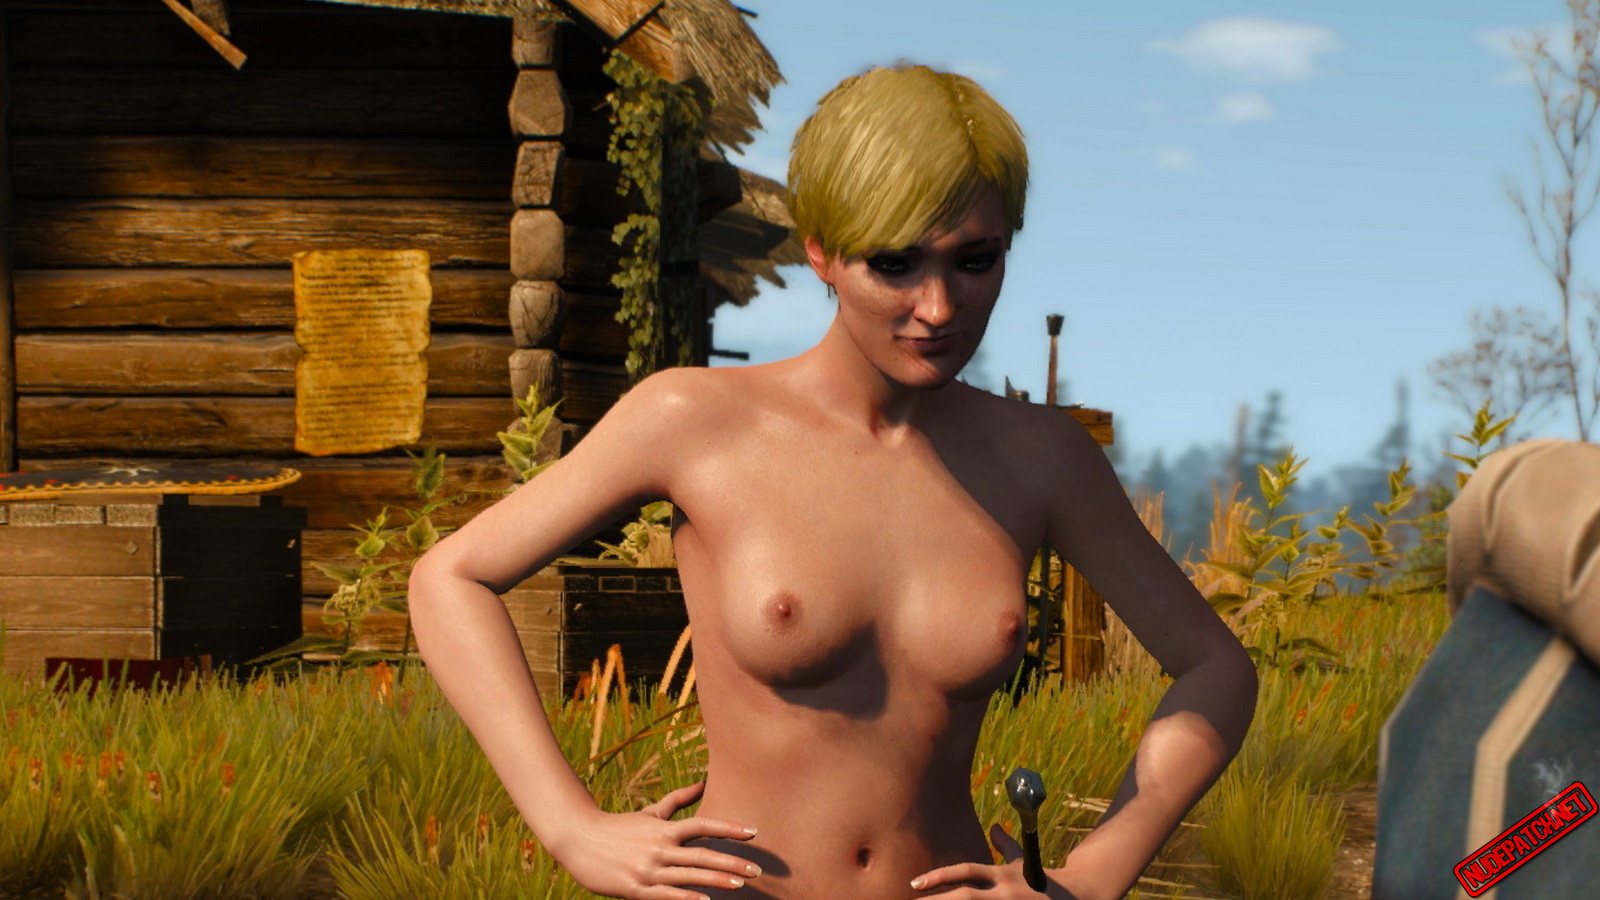 The Witcher 3 Nude Mod